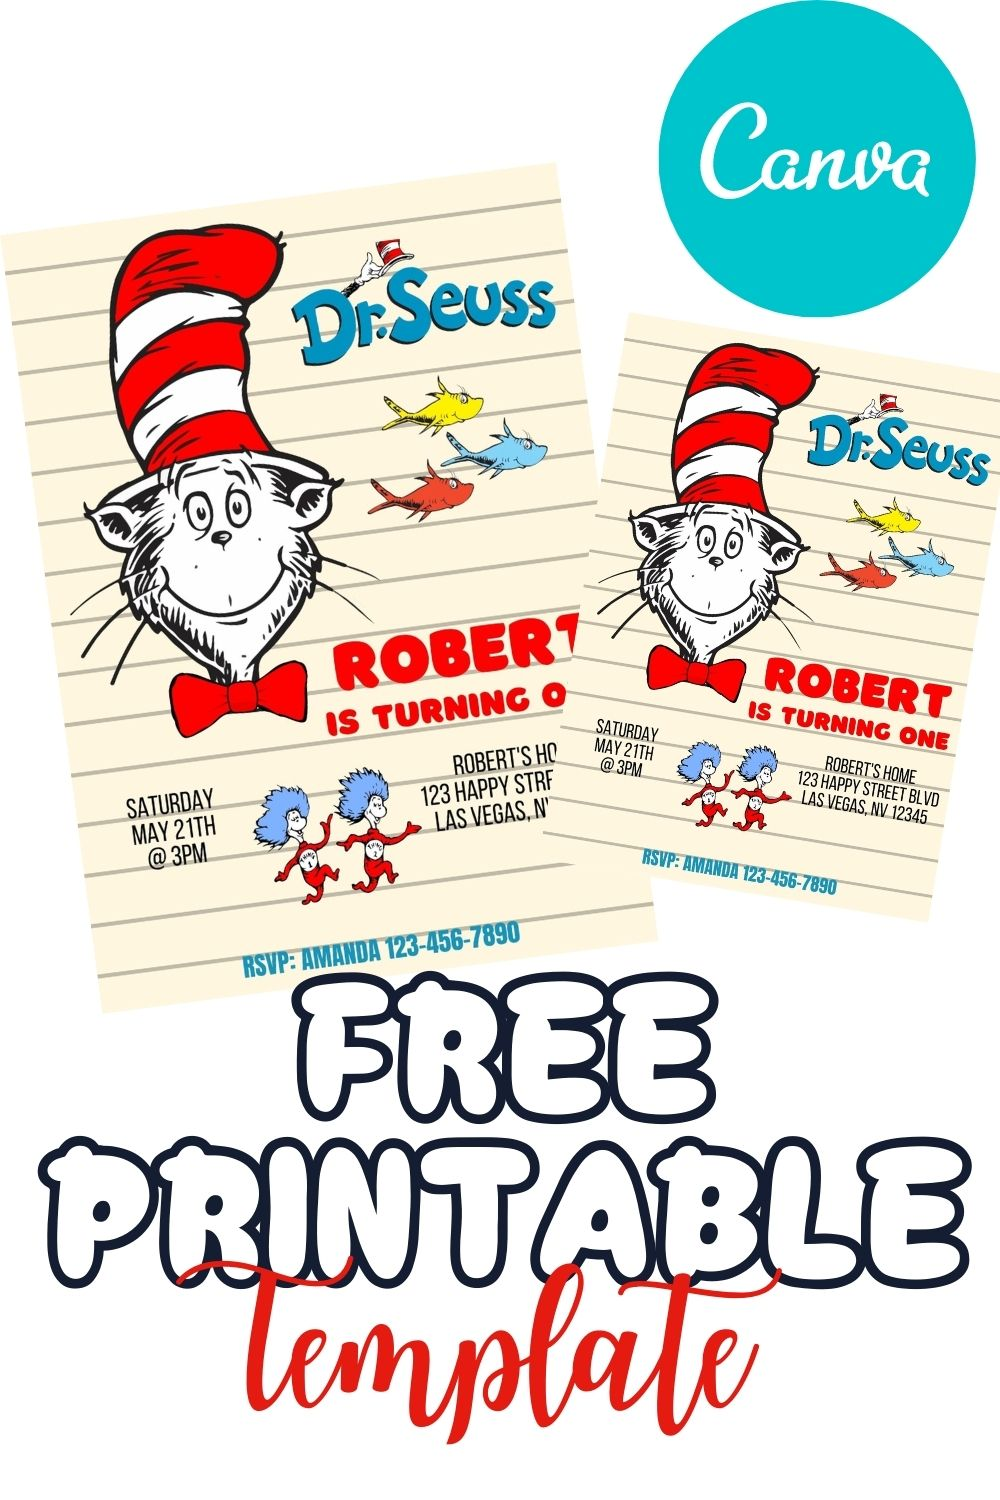 FREE PRINTABLE TEMPLATE THE CAT IN THE HAT II